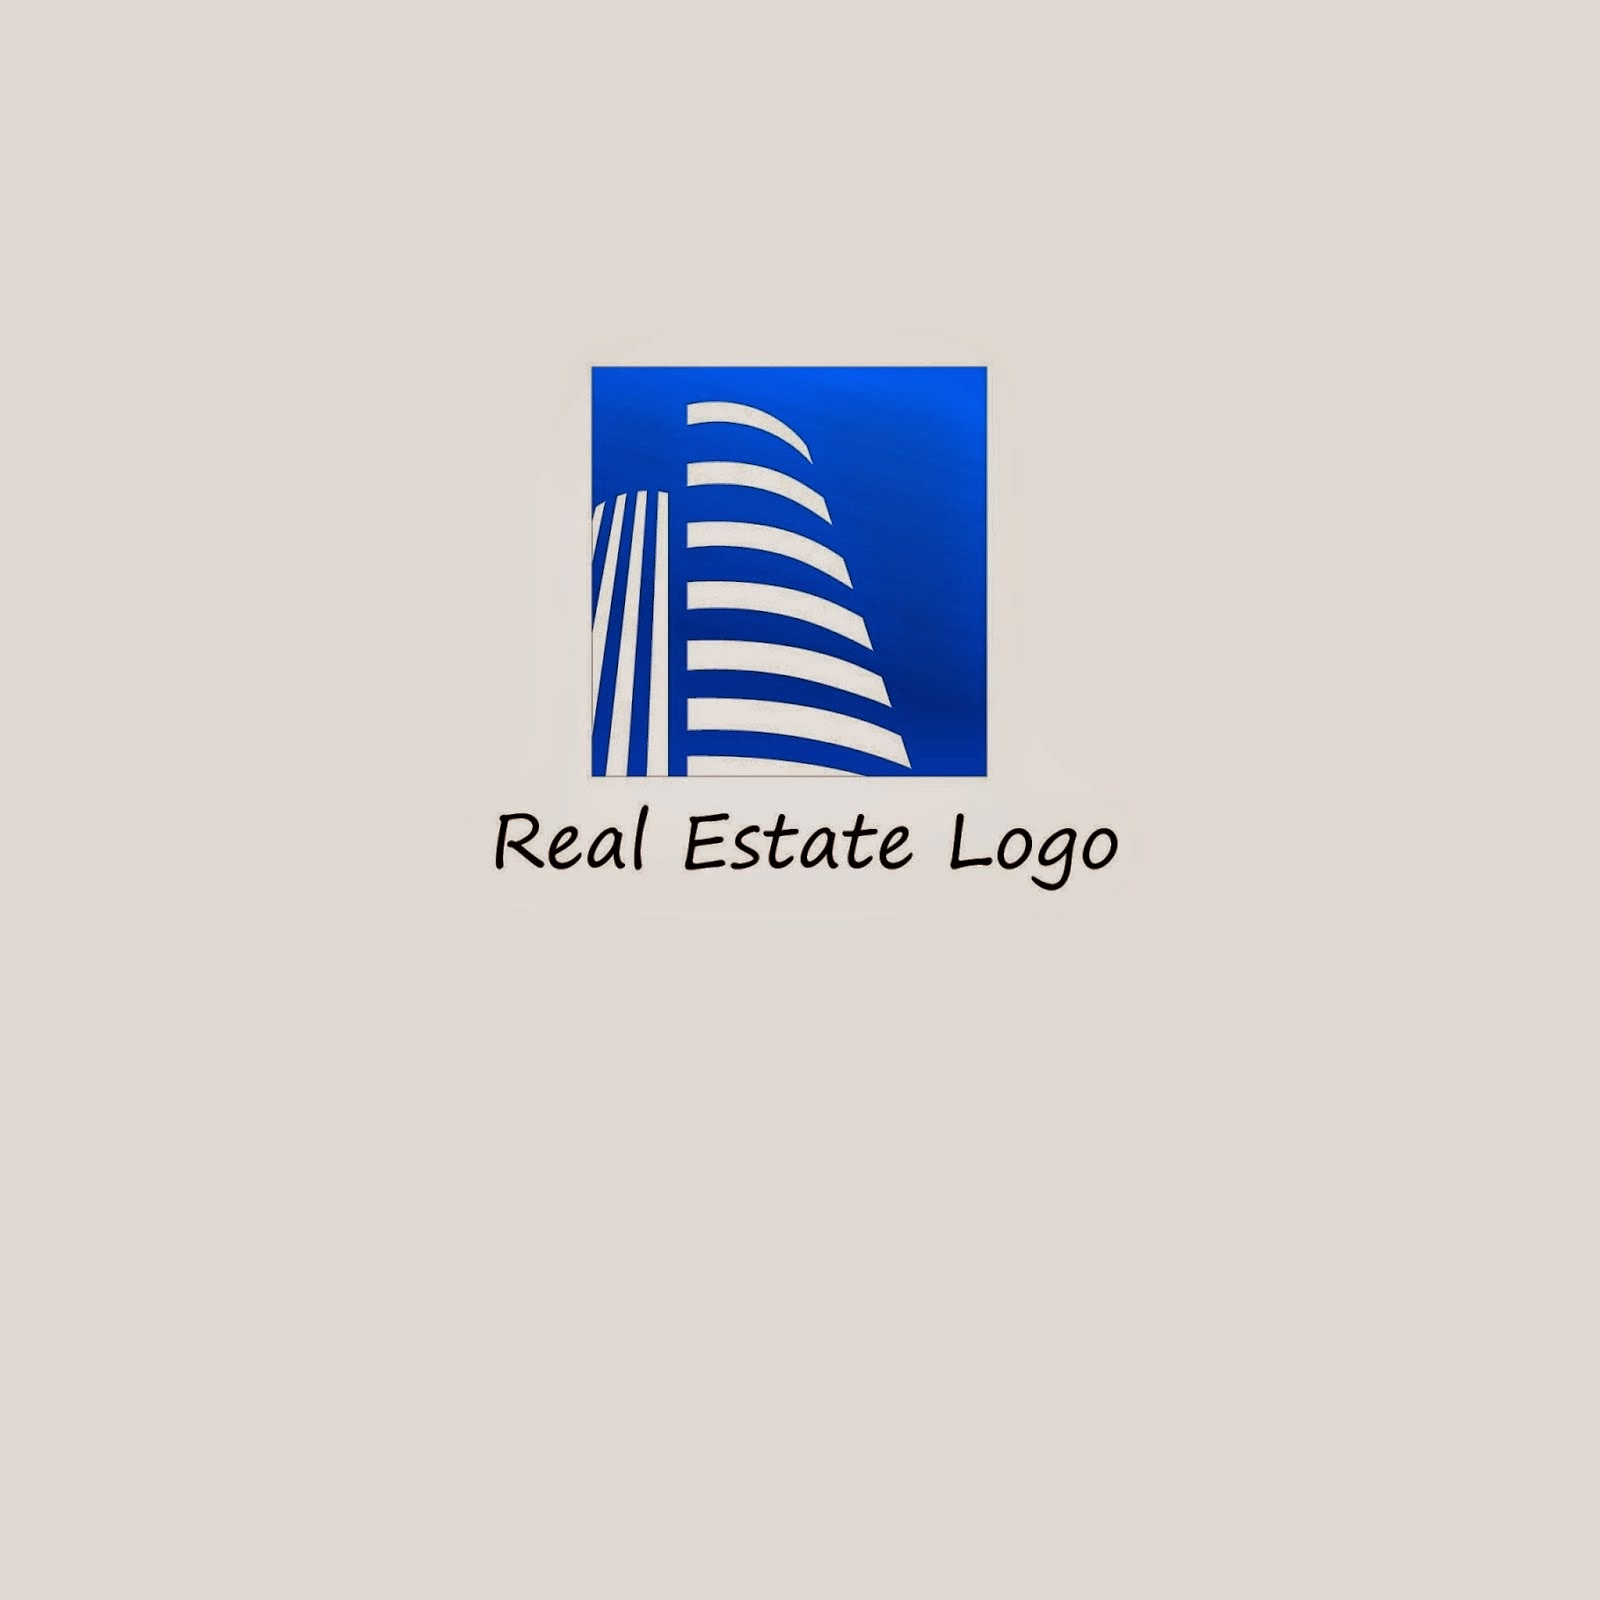 Real Estate Logo Design Ideas